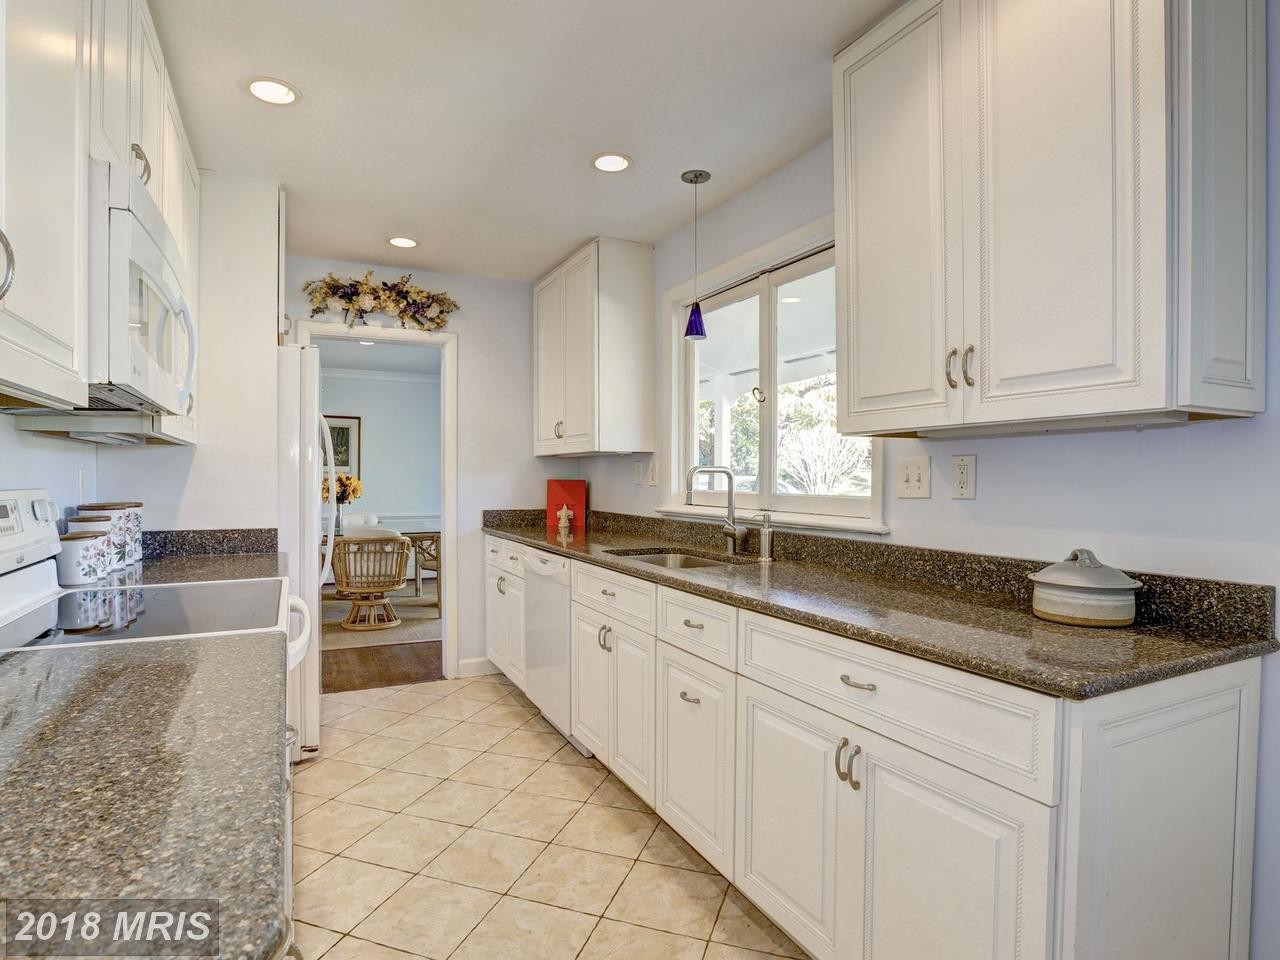 Additional photo for property listing at Rancher, Detached - POTOMAC, MD 10700 RIVER RD Potomac, Μεριλαντ,20854 Ηνωμενεσ Πολιτειεσ